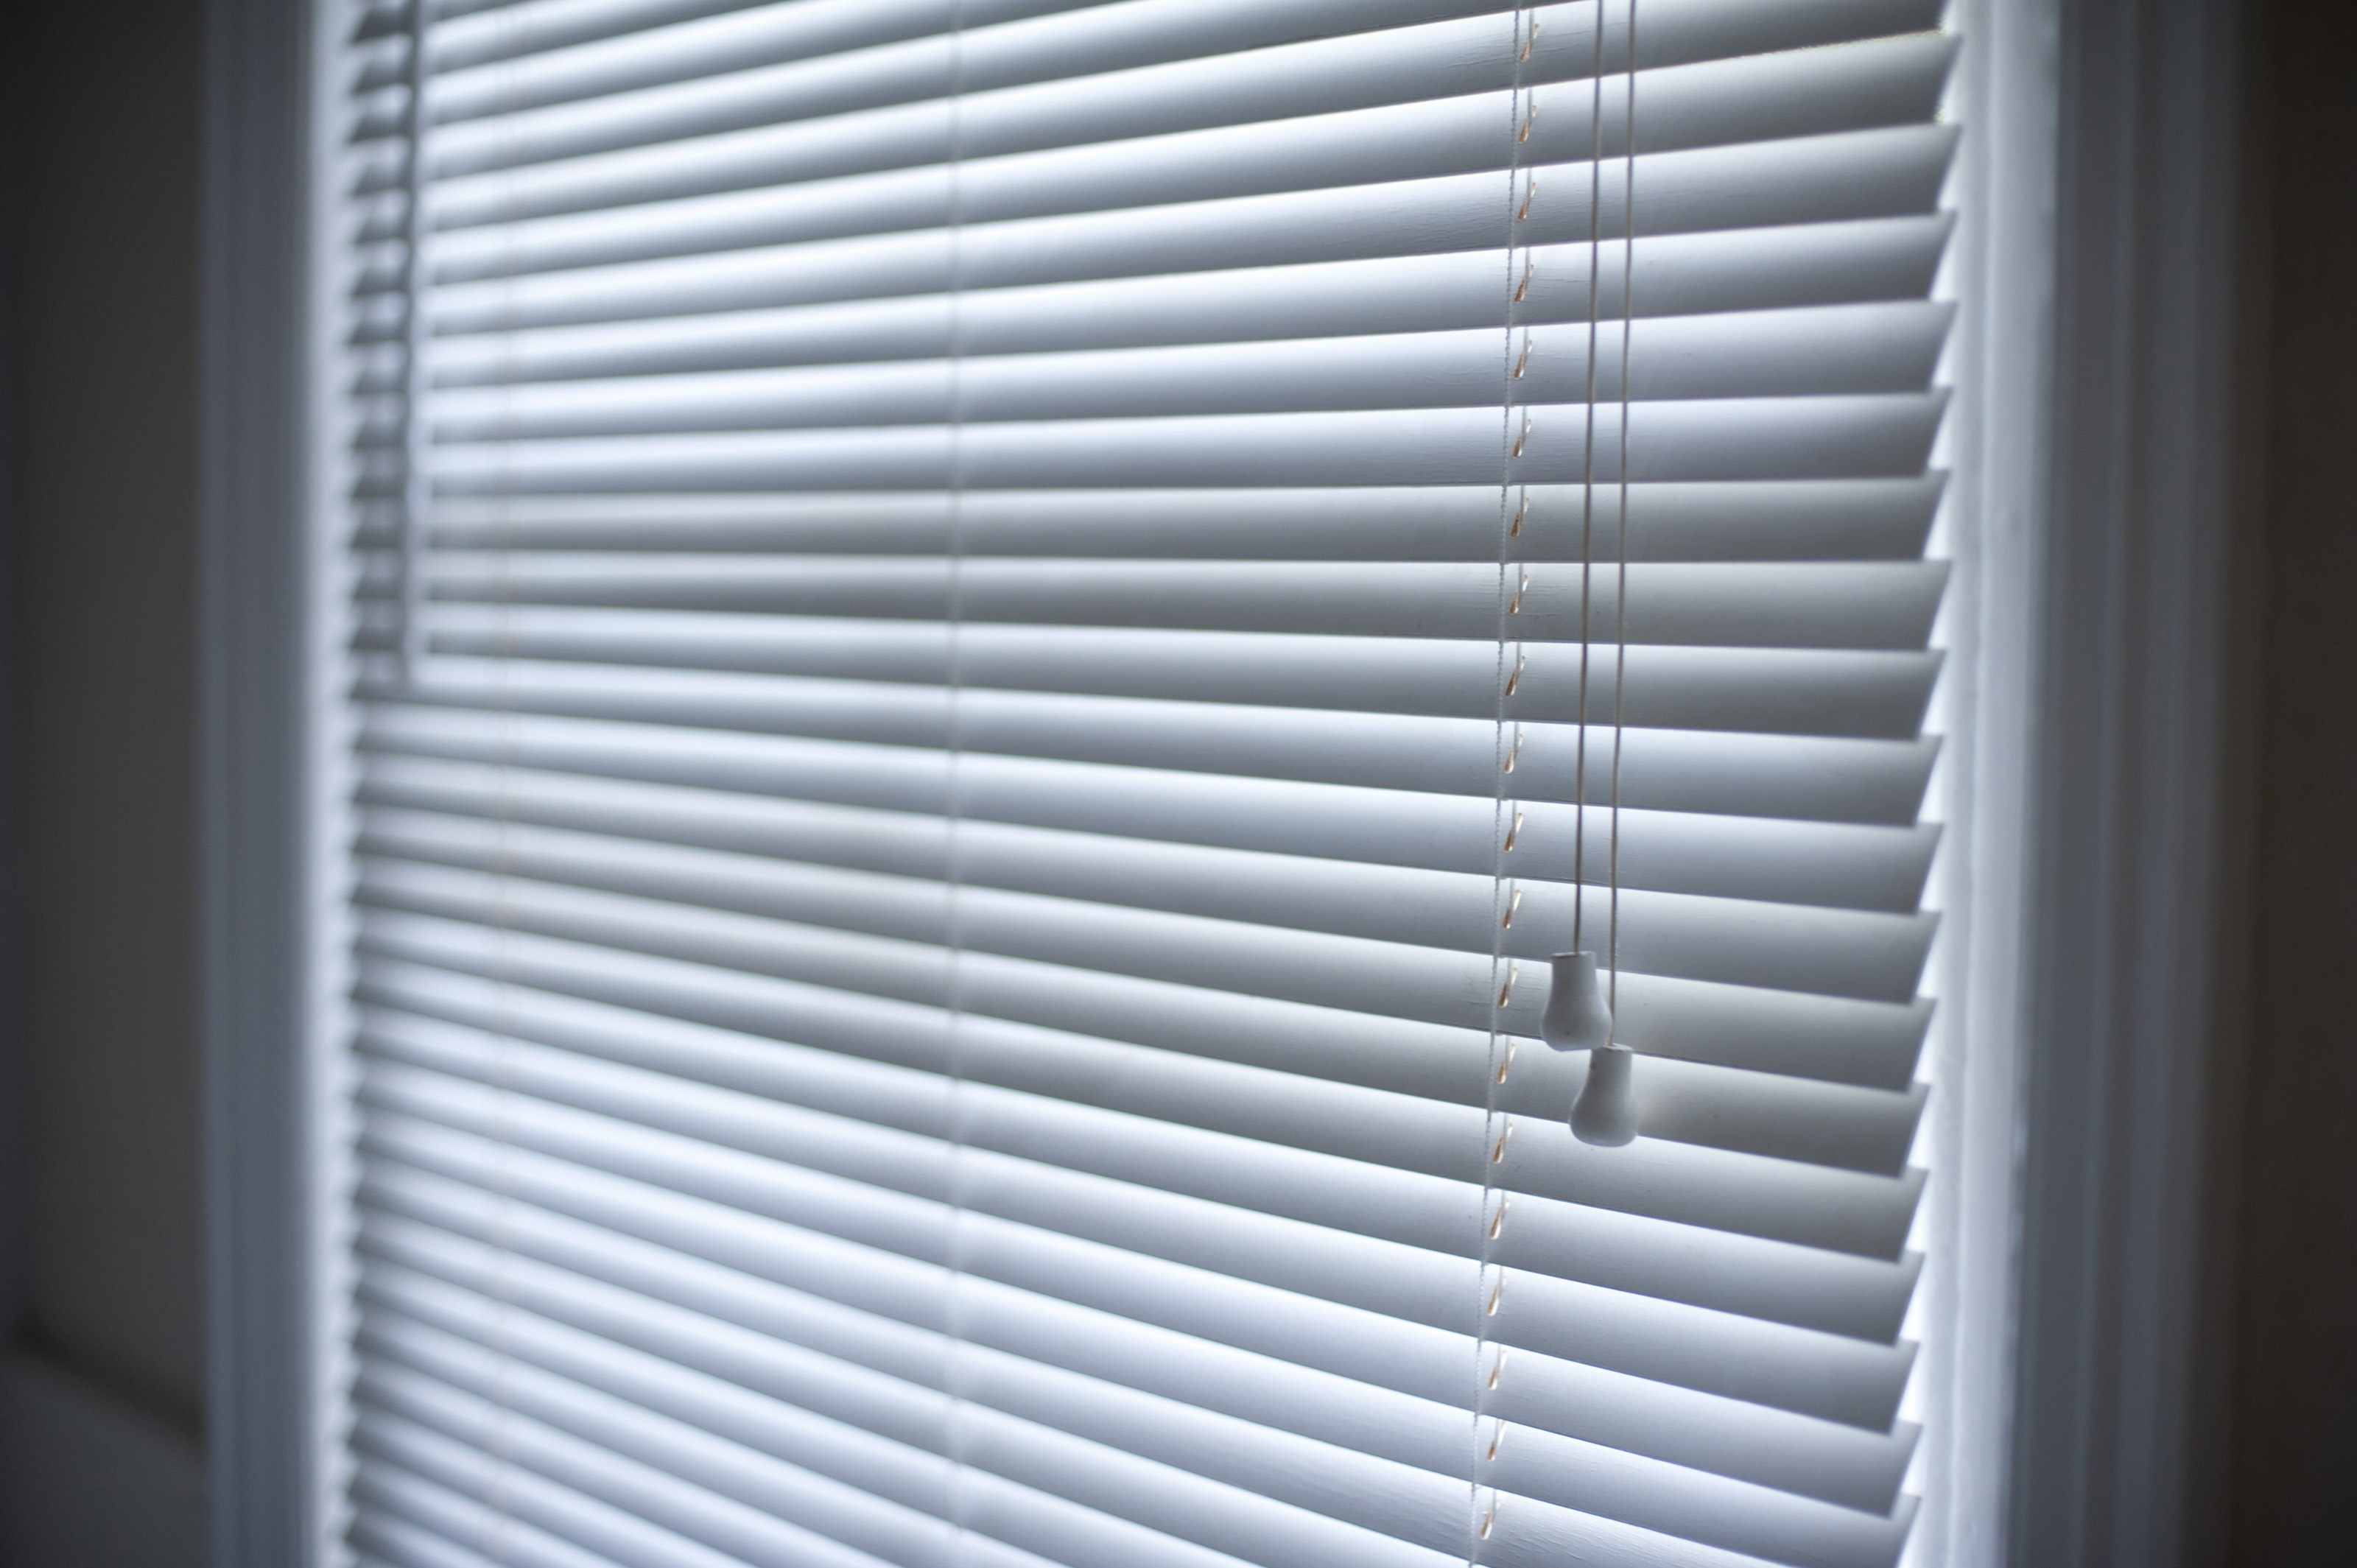 Free Stock Photo 10648 Venetian Blinds Hanging In A Window